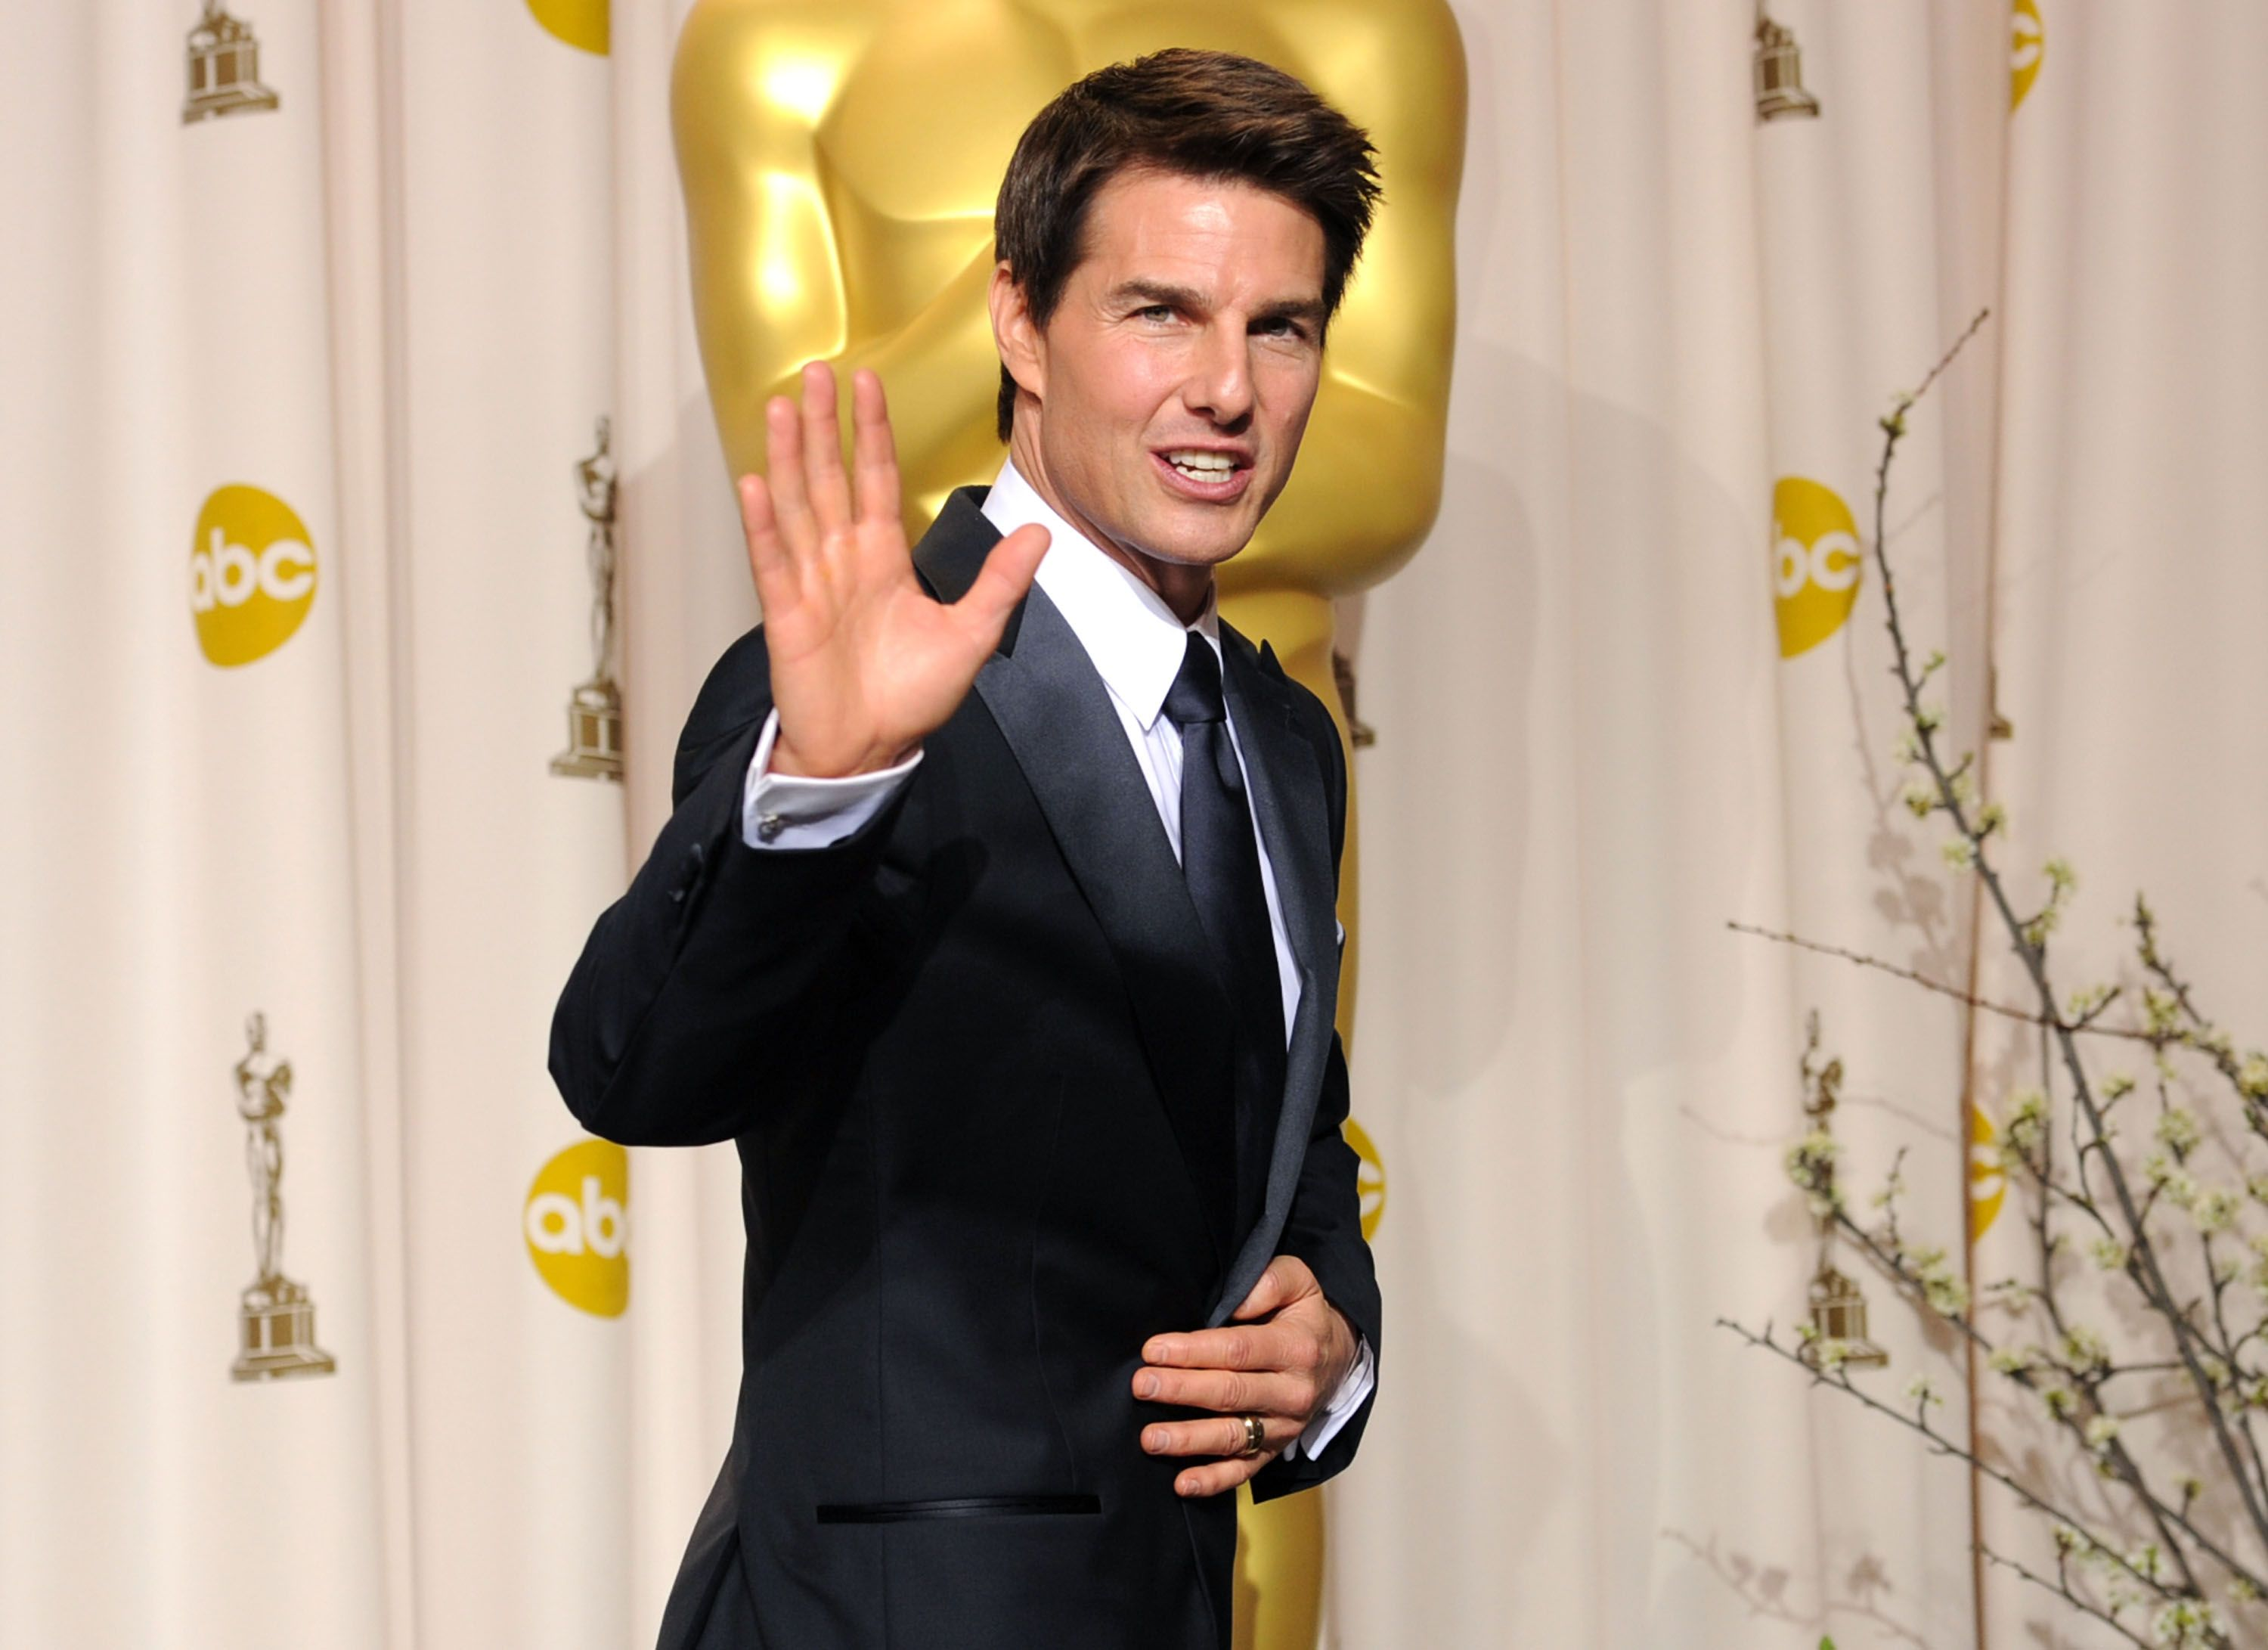 Tom Cruise at the 84th Annual Academy Awards held at the Hollywood & Highland Center on February 26, 2012 | Photo: Getty Images